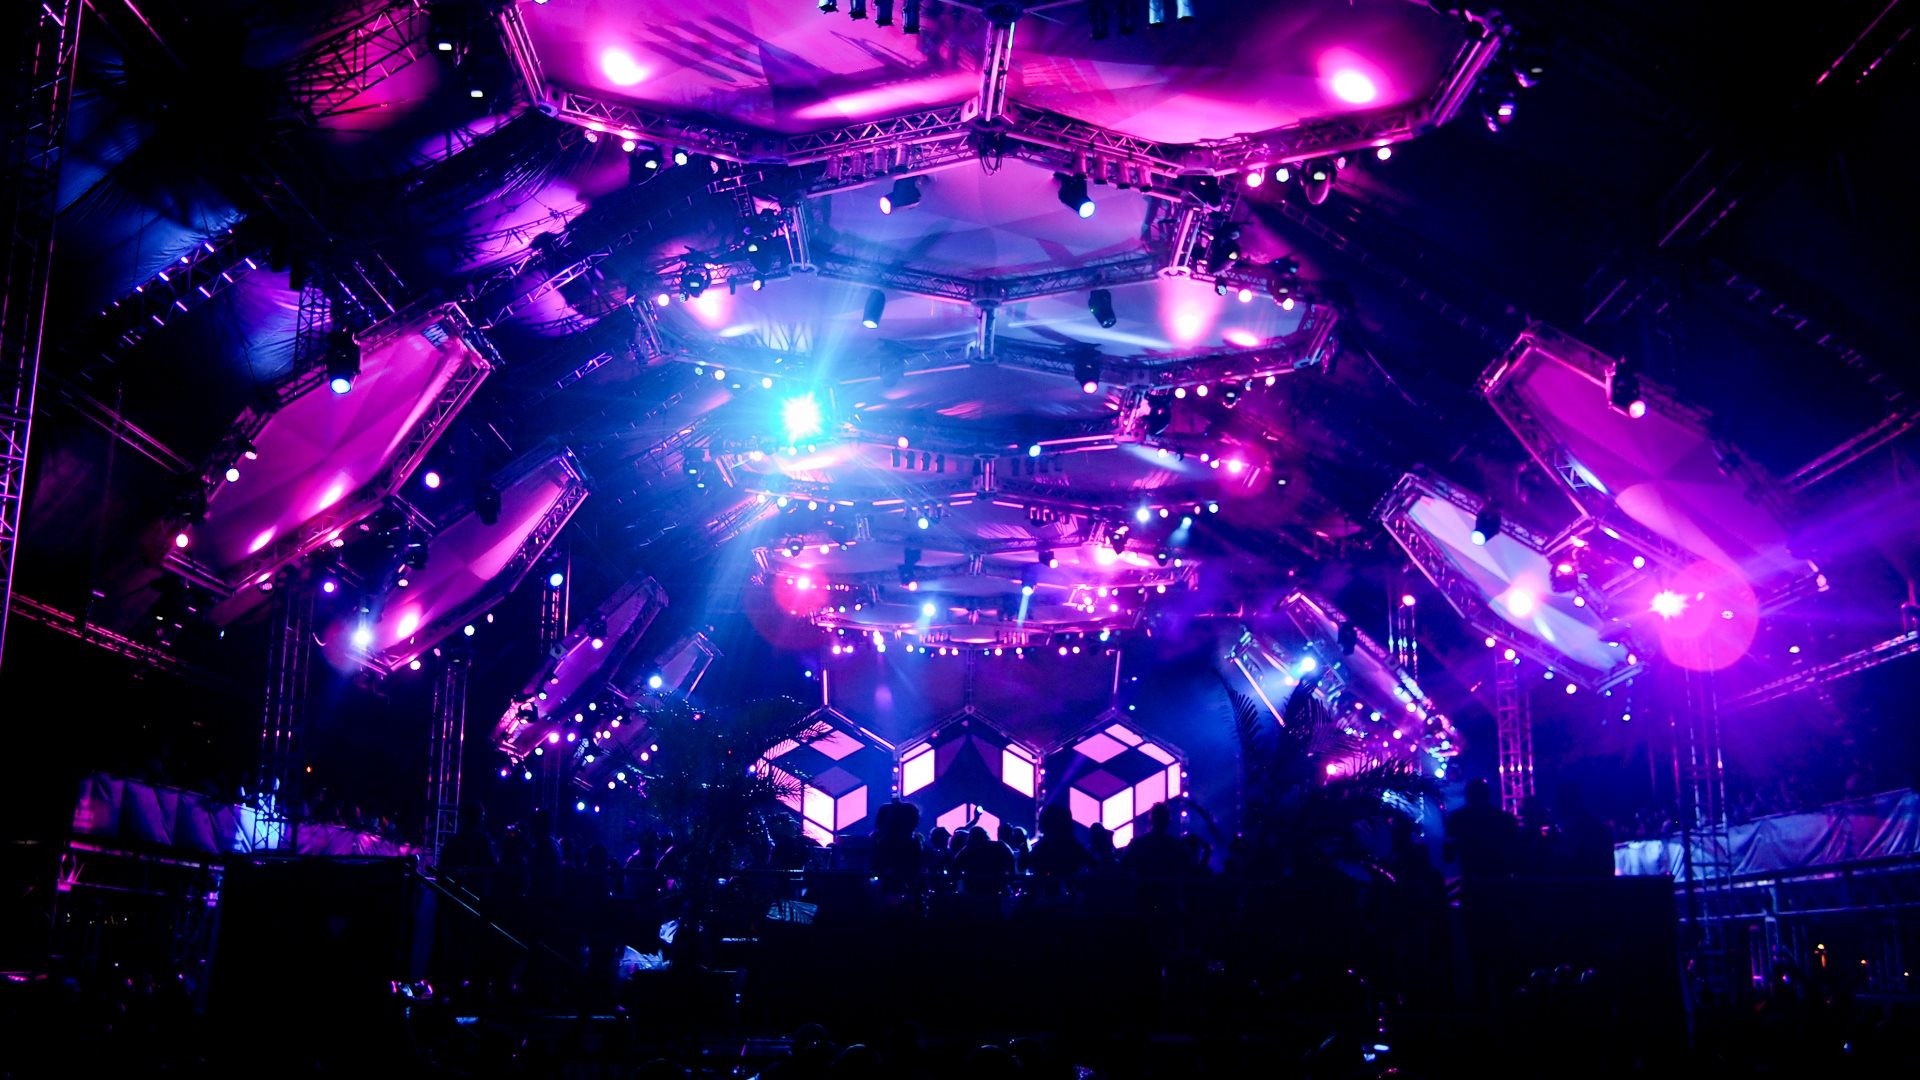 Tiesto In Miami Hd Desktop Wallpaper Widescreen High Definition